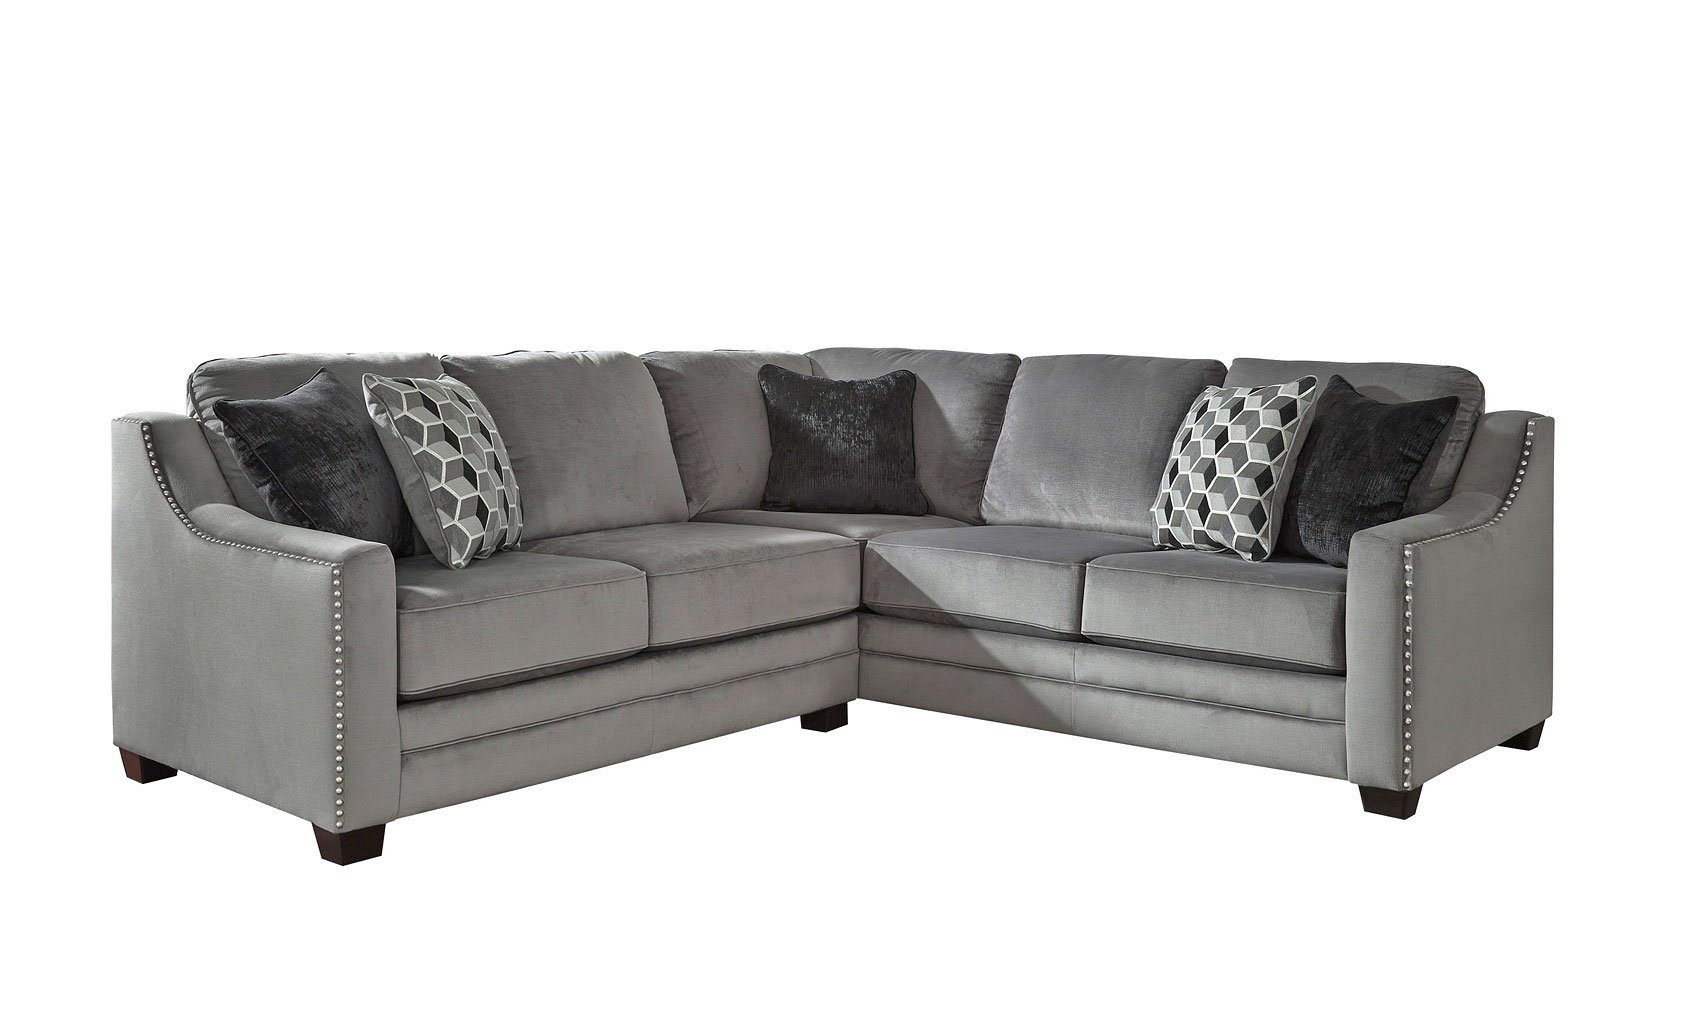 Loveseat Sectional | Whitecraftwoodard Mona Wicker Right Arm Regarding Taron 3 Piece Power Reclining Sectionals With Left Facing Console Loveseat (View 3 of 25)